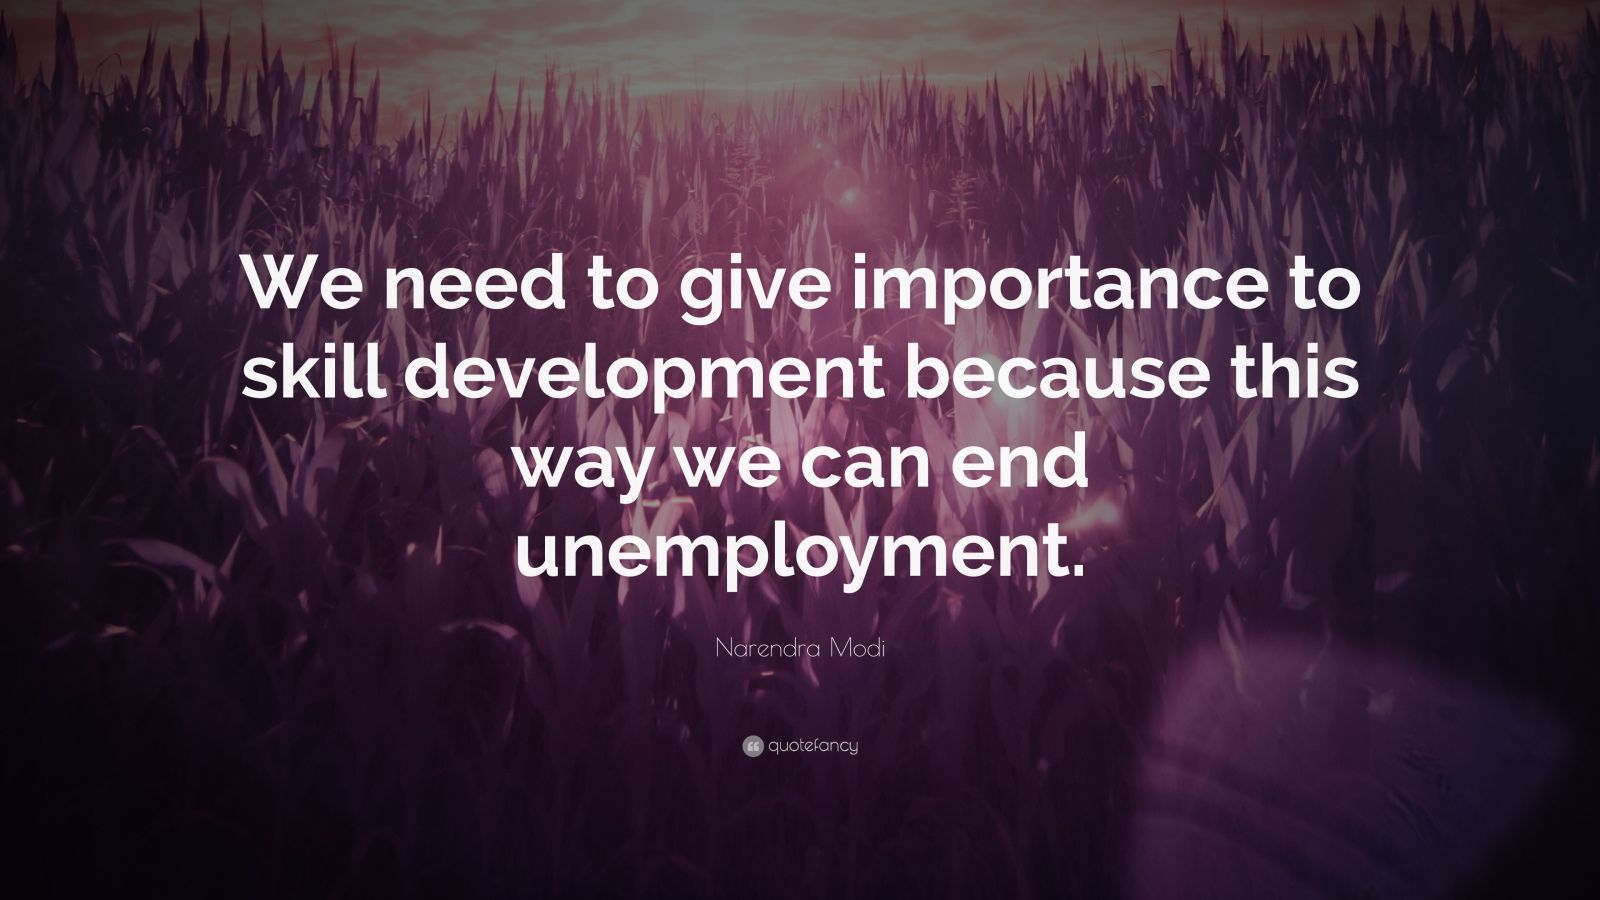 """Narendra Modi Quote: """"We need to give importance to skill development because this way we can end unemployment."""""""